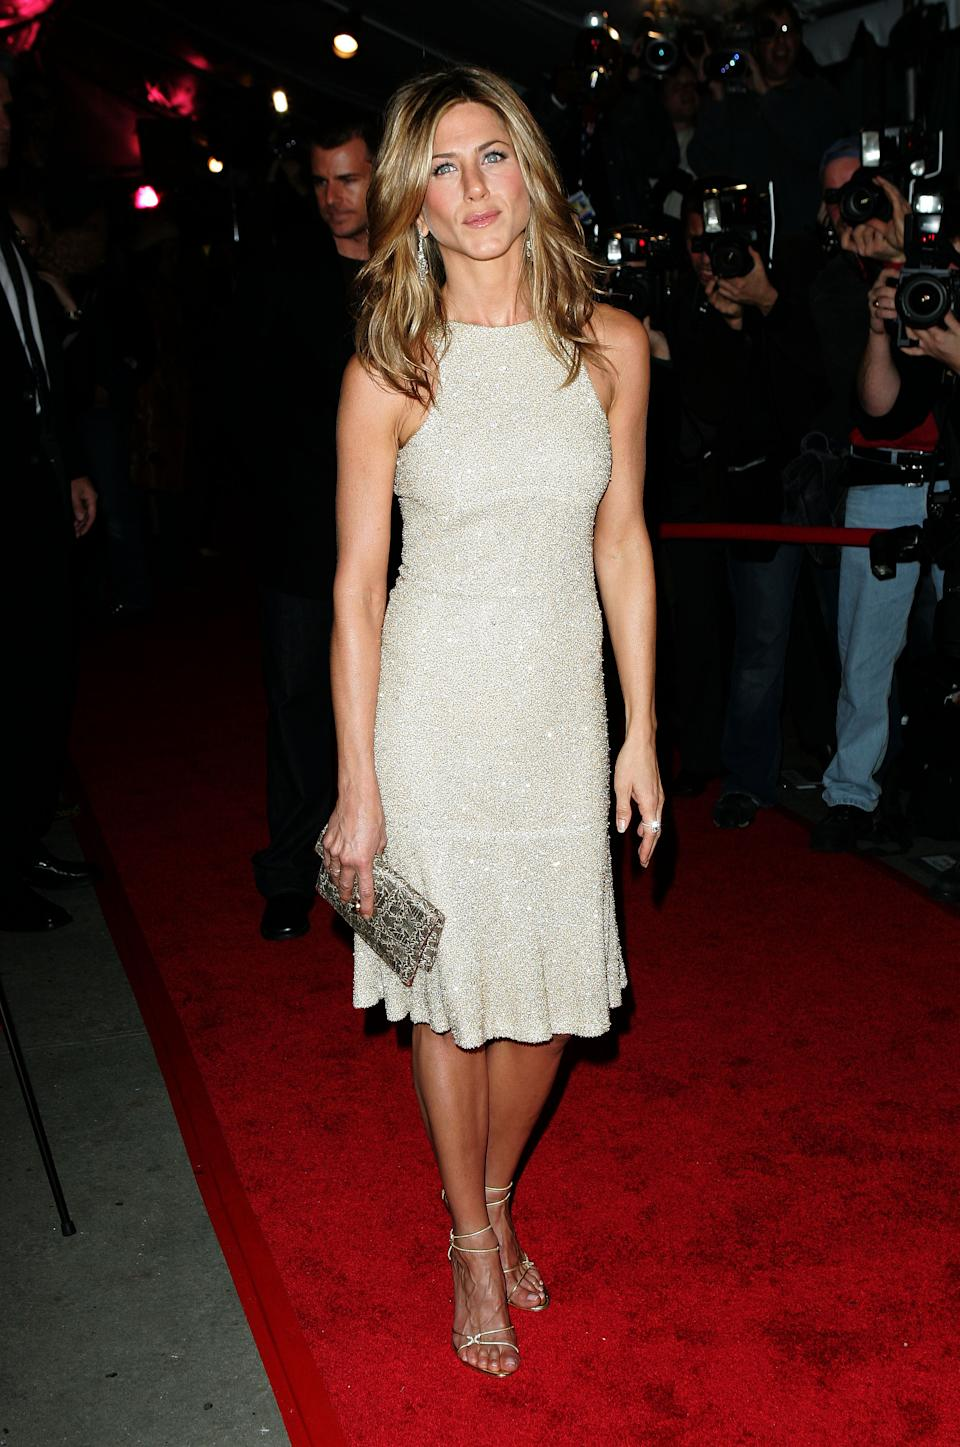 """Aniston shimmered in a sparkling cream and gold dress that showed off her tanned physique at the 2005 premiere of her film, """"Derailed."""" (Photo by James Devaney/WireImage)"""